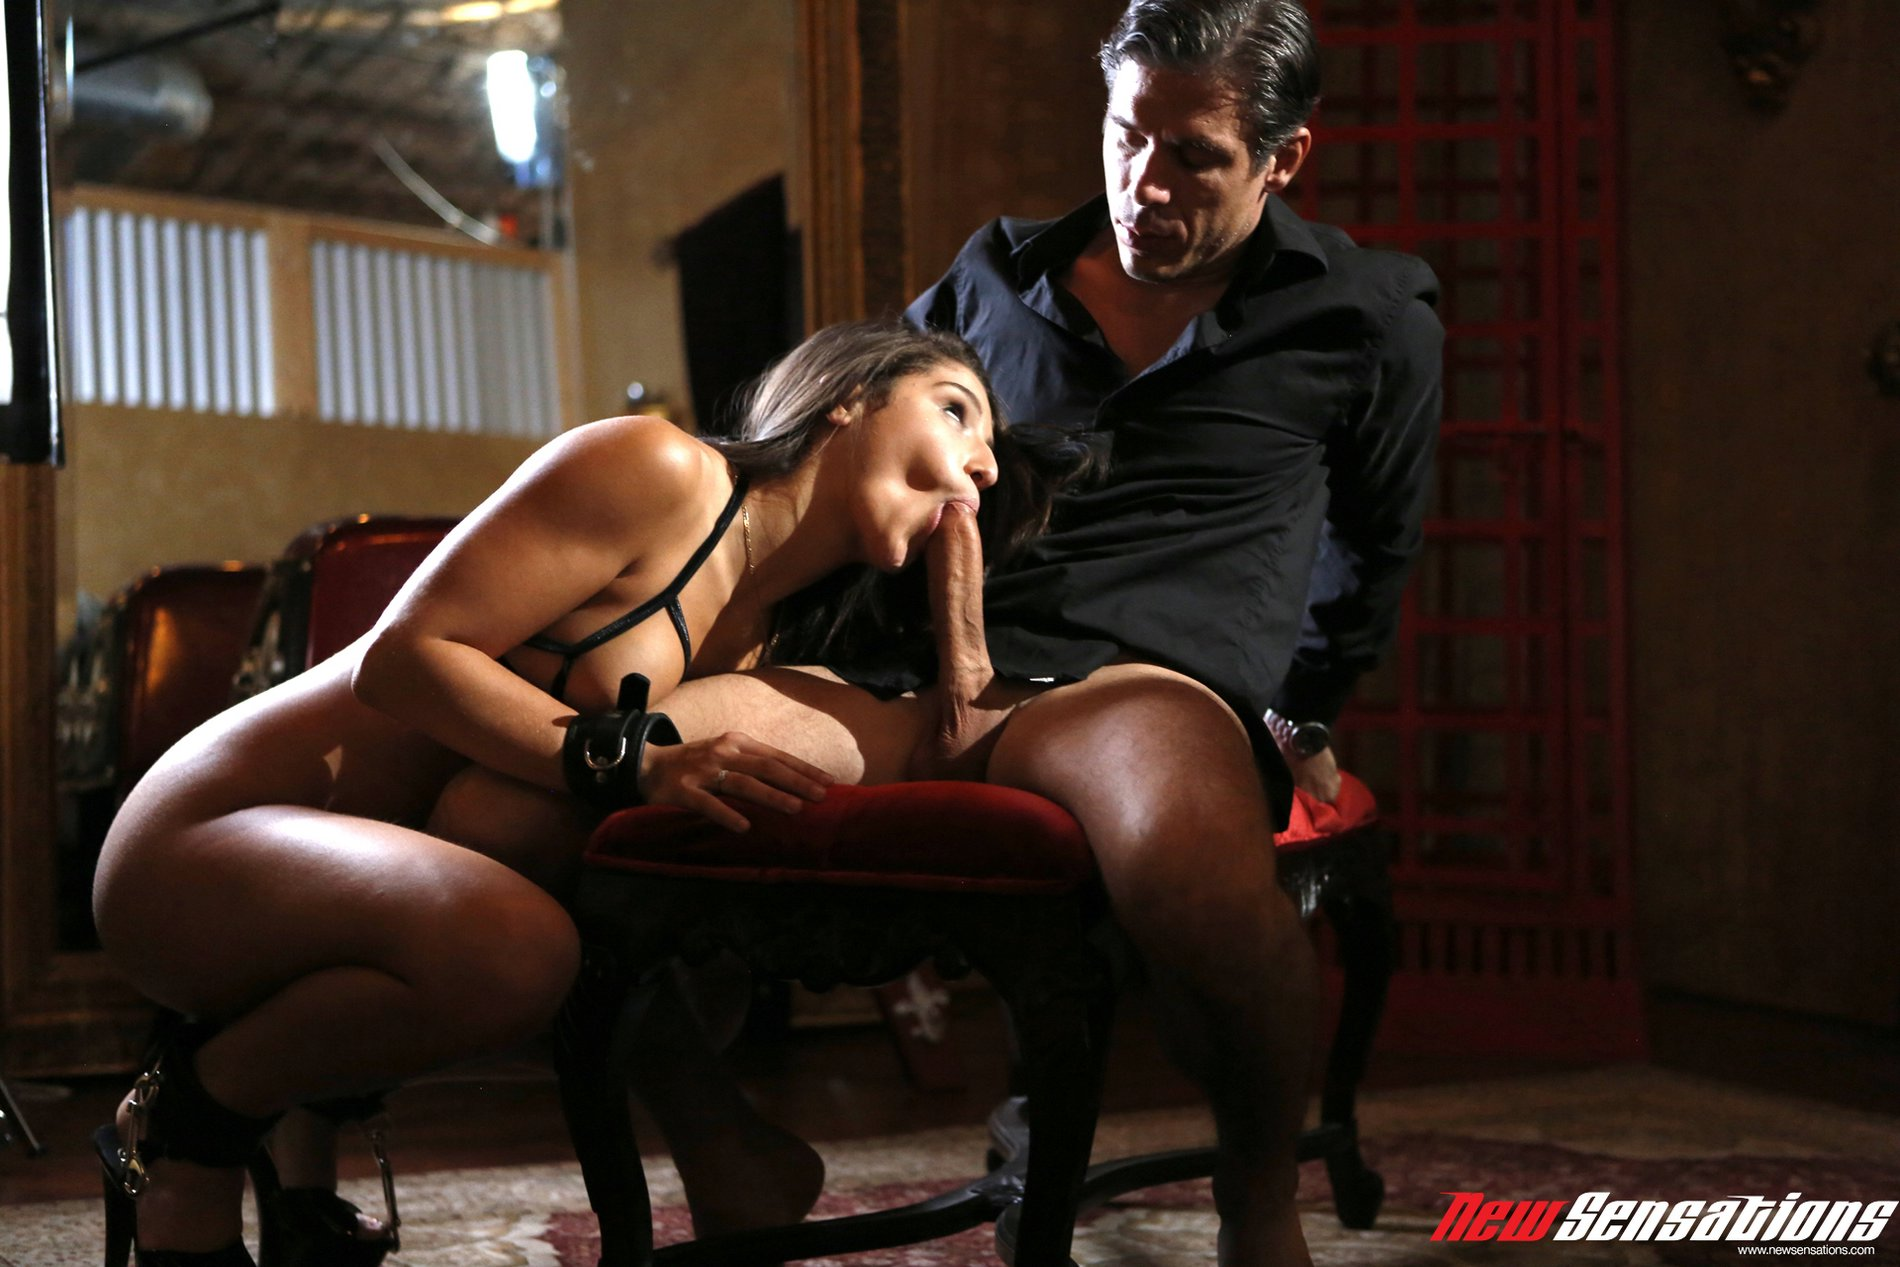 Milf is tied up and fucked - 4 4